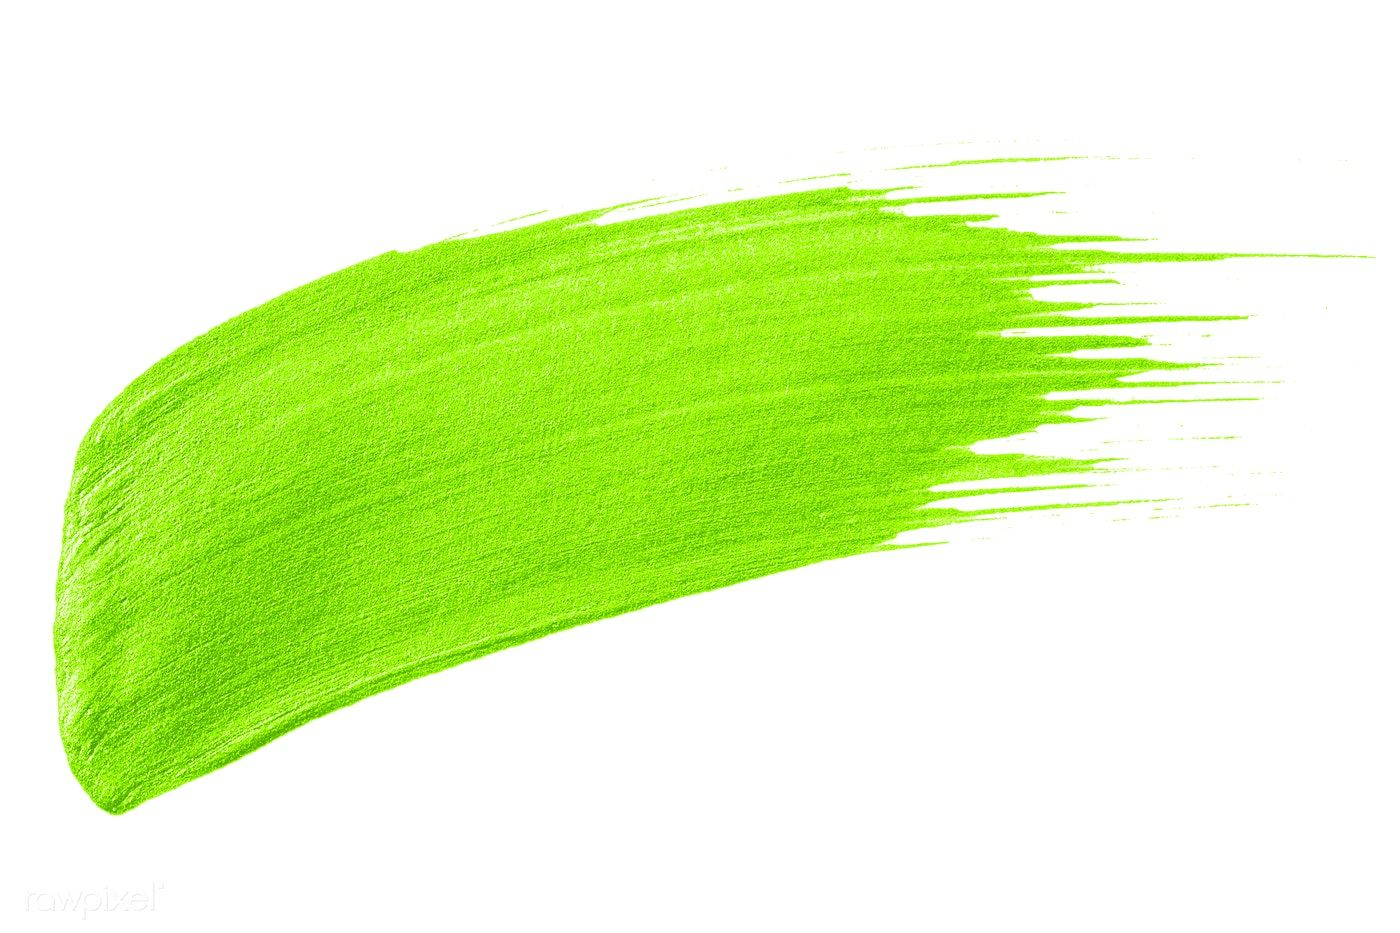 Neon lime green brush stroke free image by